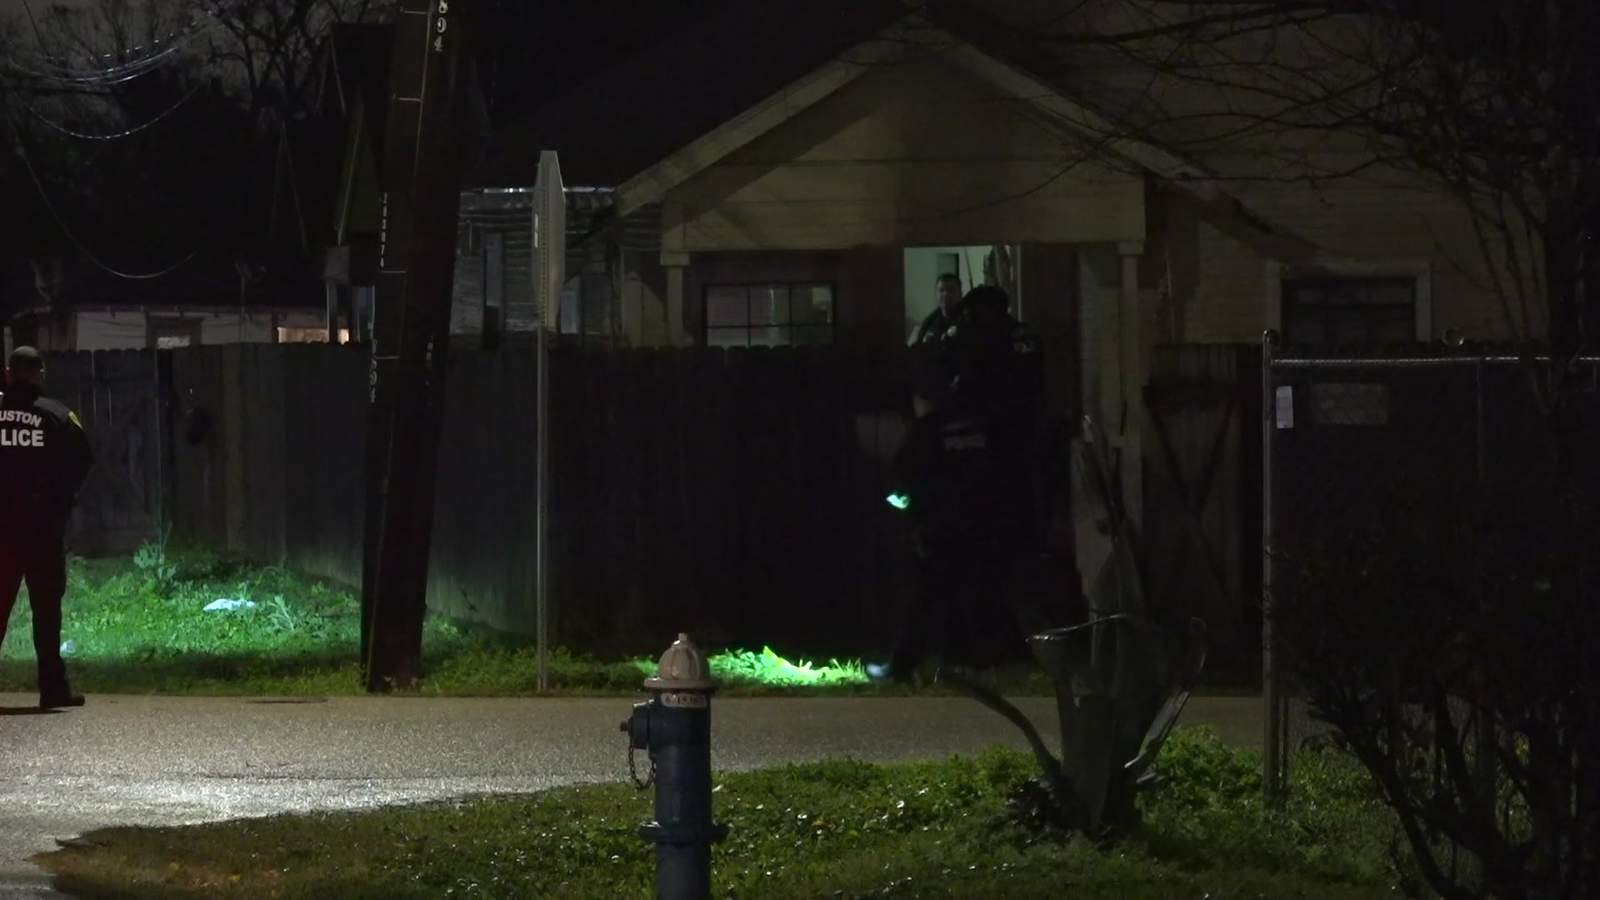 Homeowner opens fire on would-be thief trying to break into his home, police say